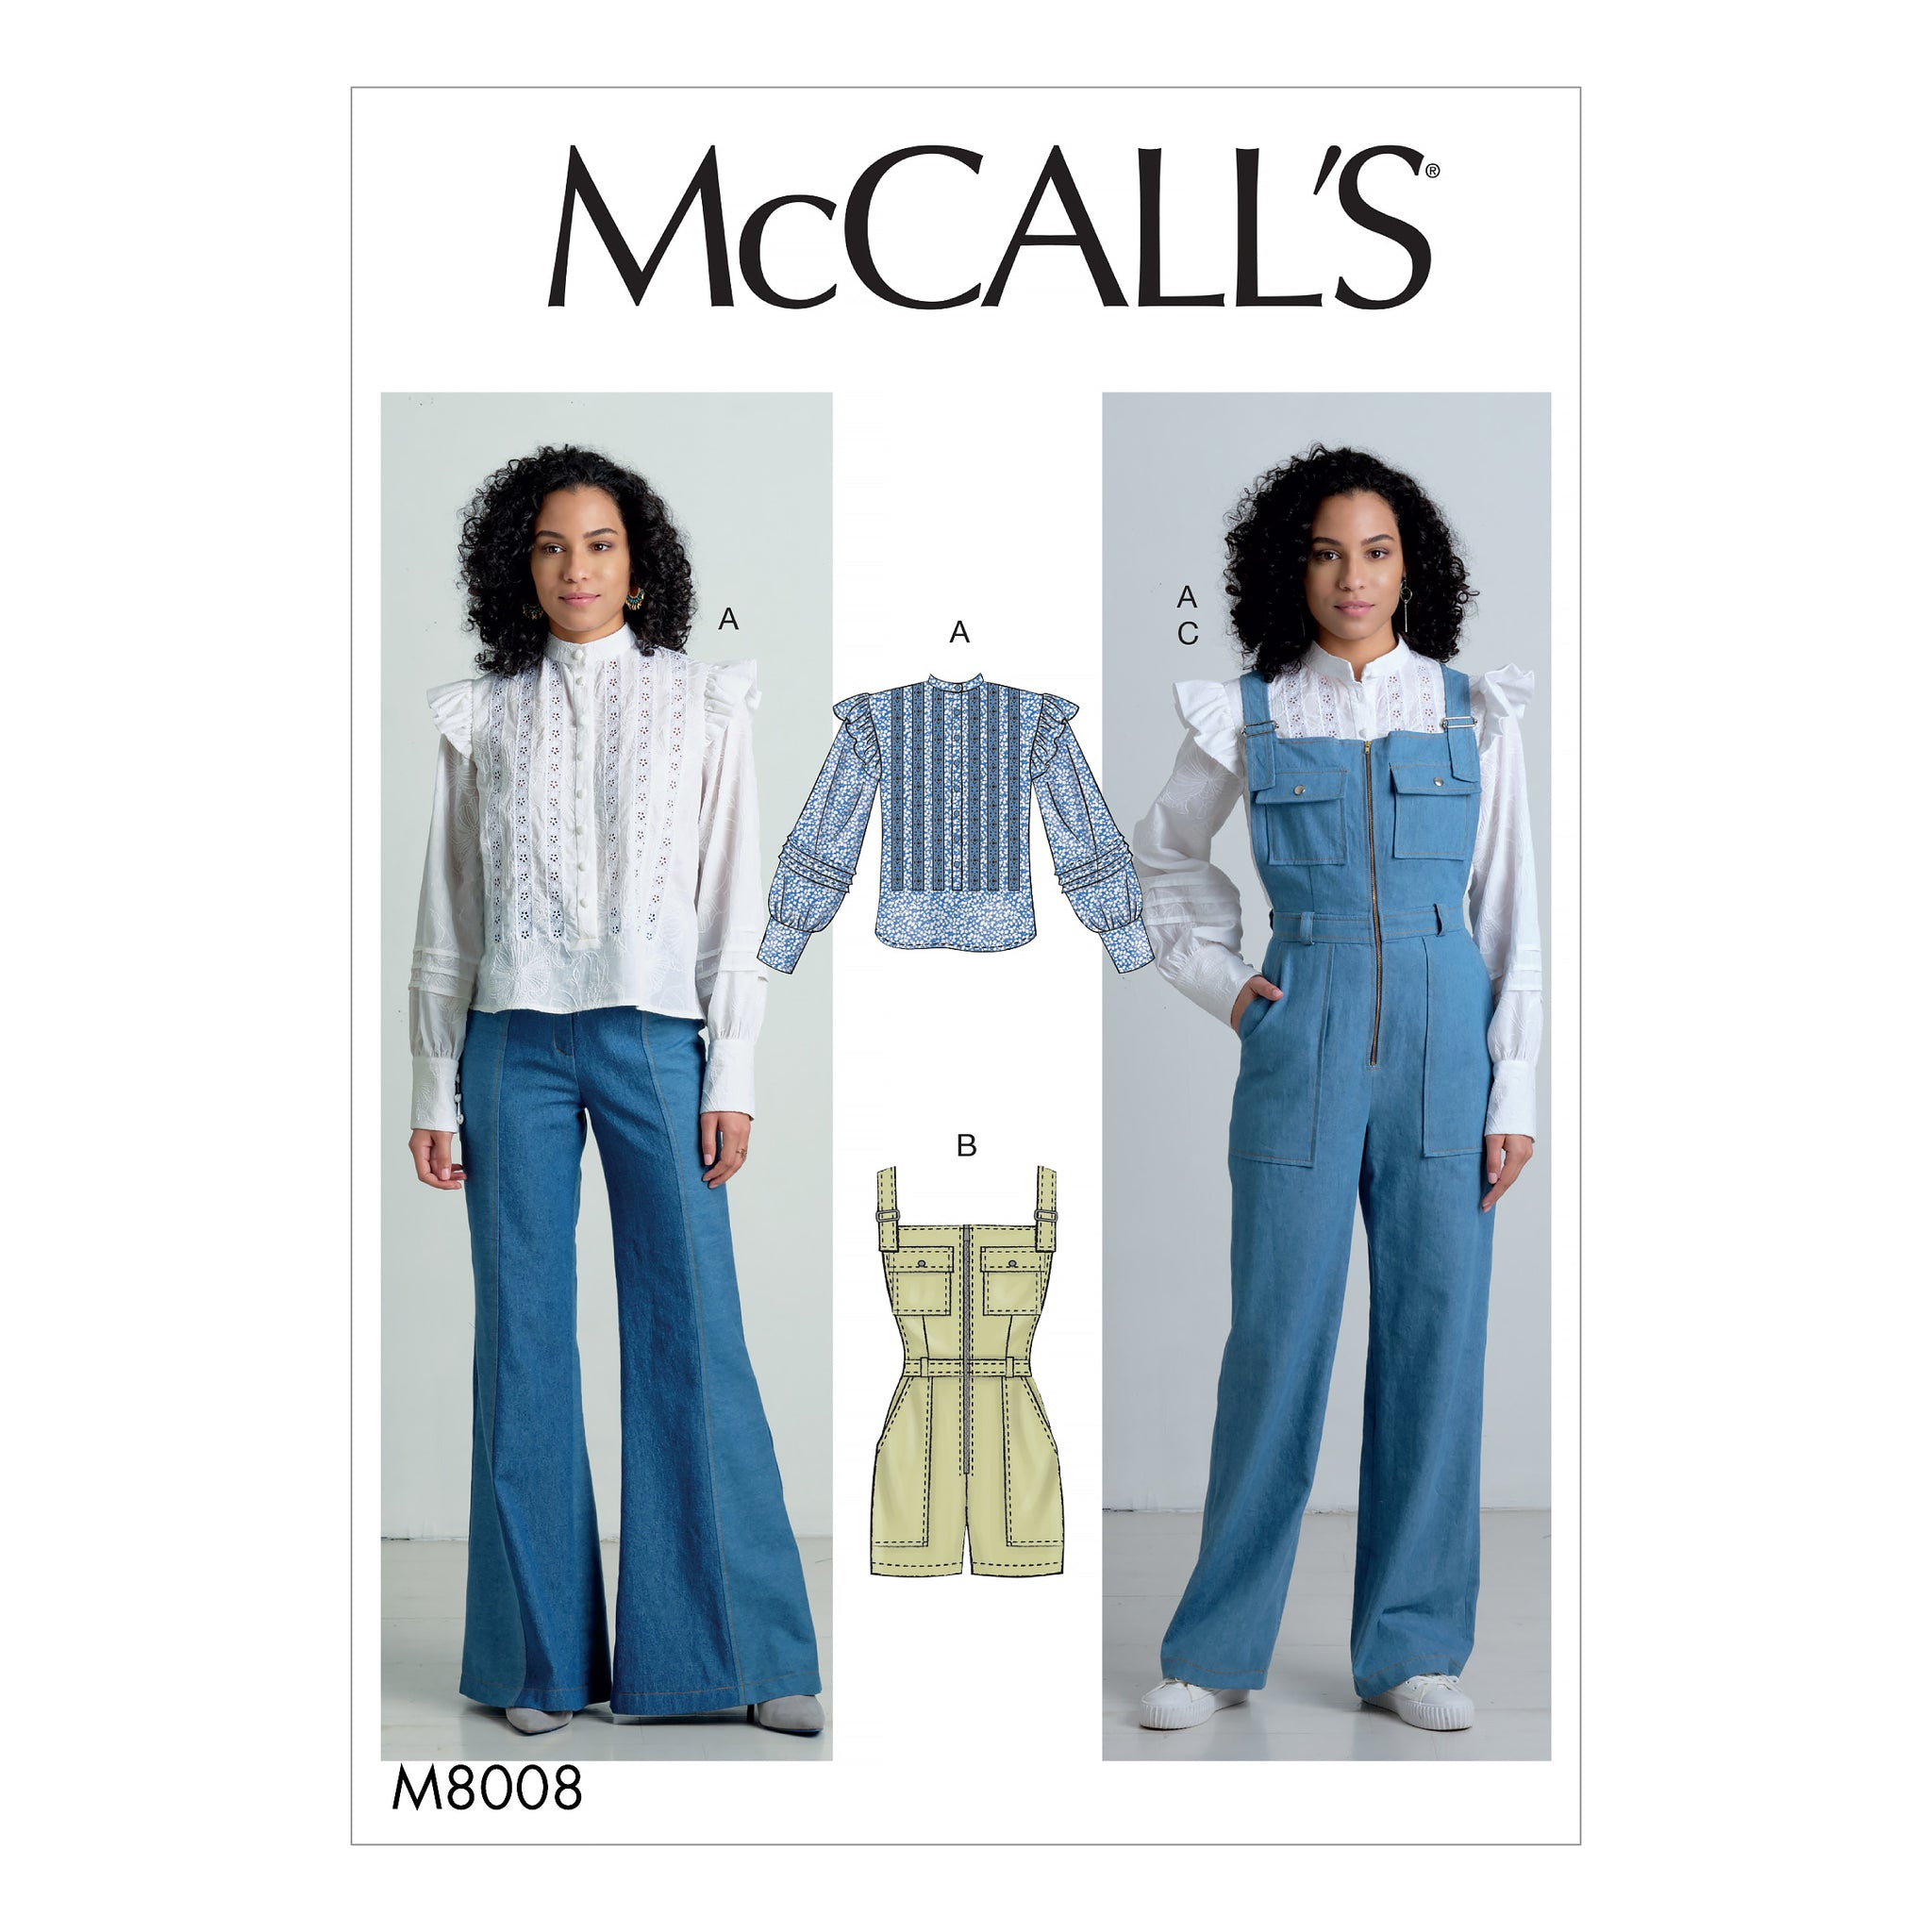 McCall's M8008E5 Misses' Top, Romper, and Overalls 14-16-18-20-22